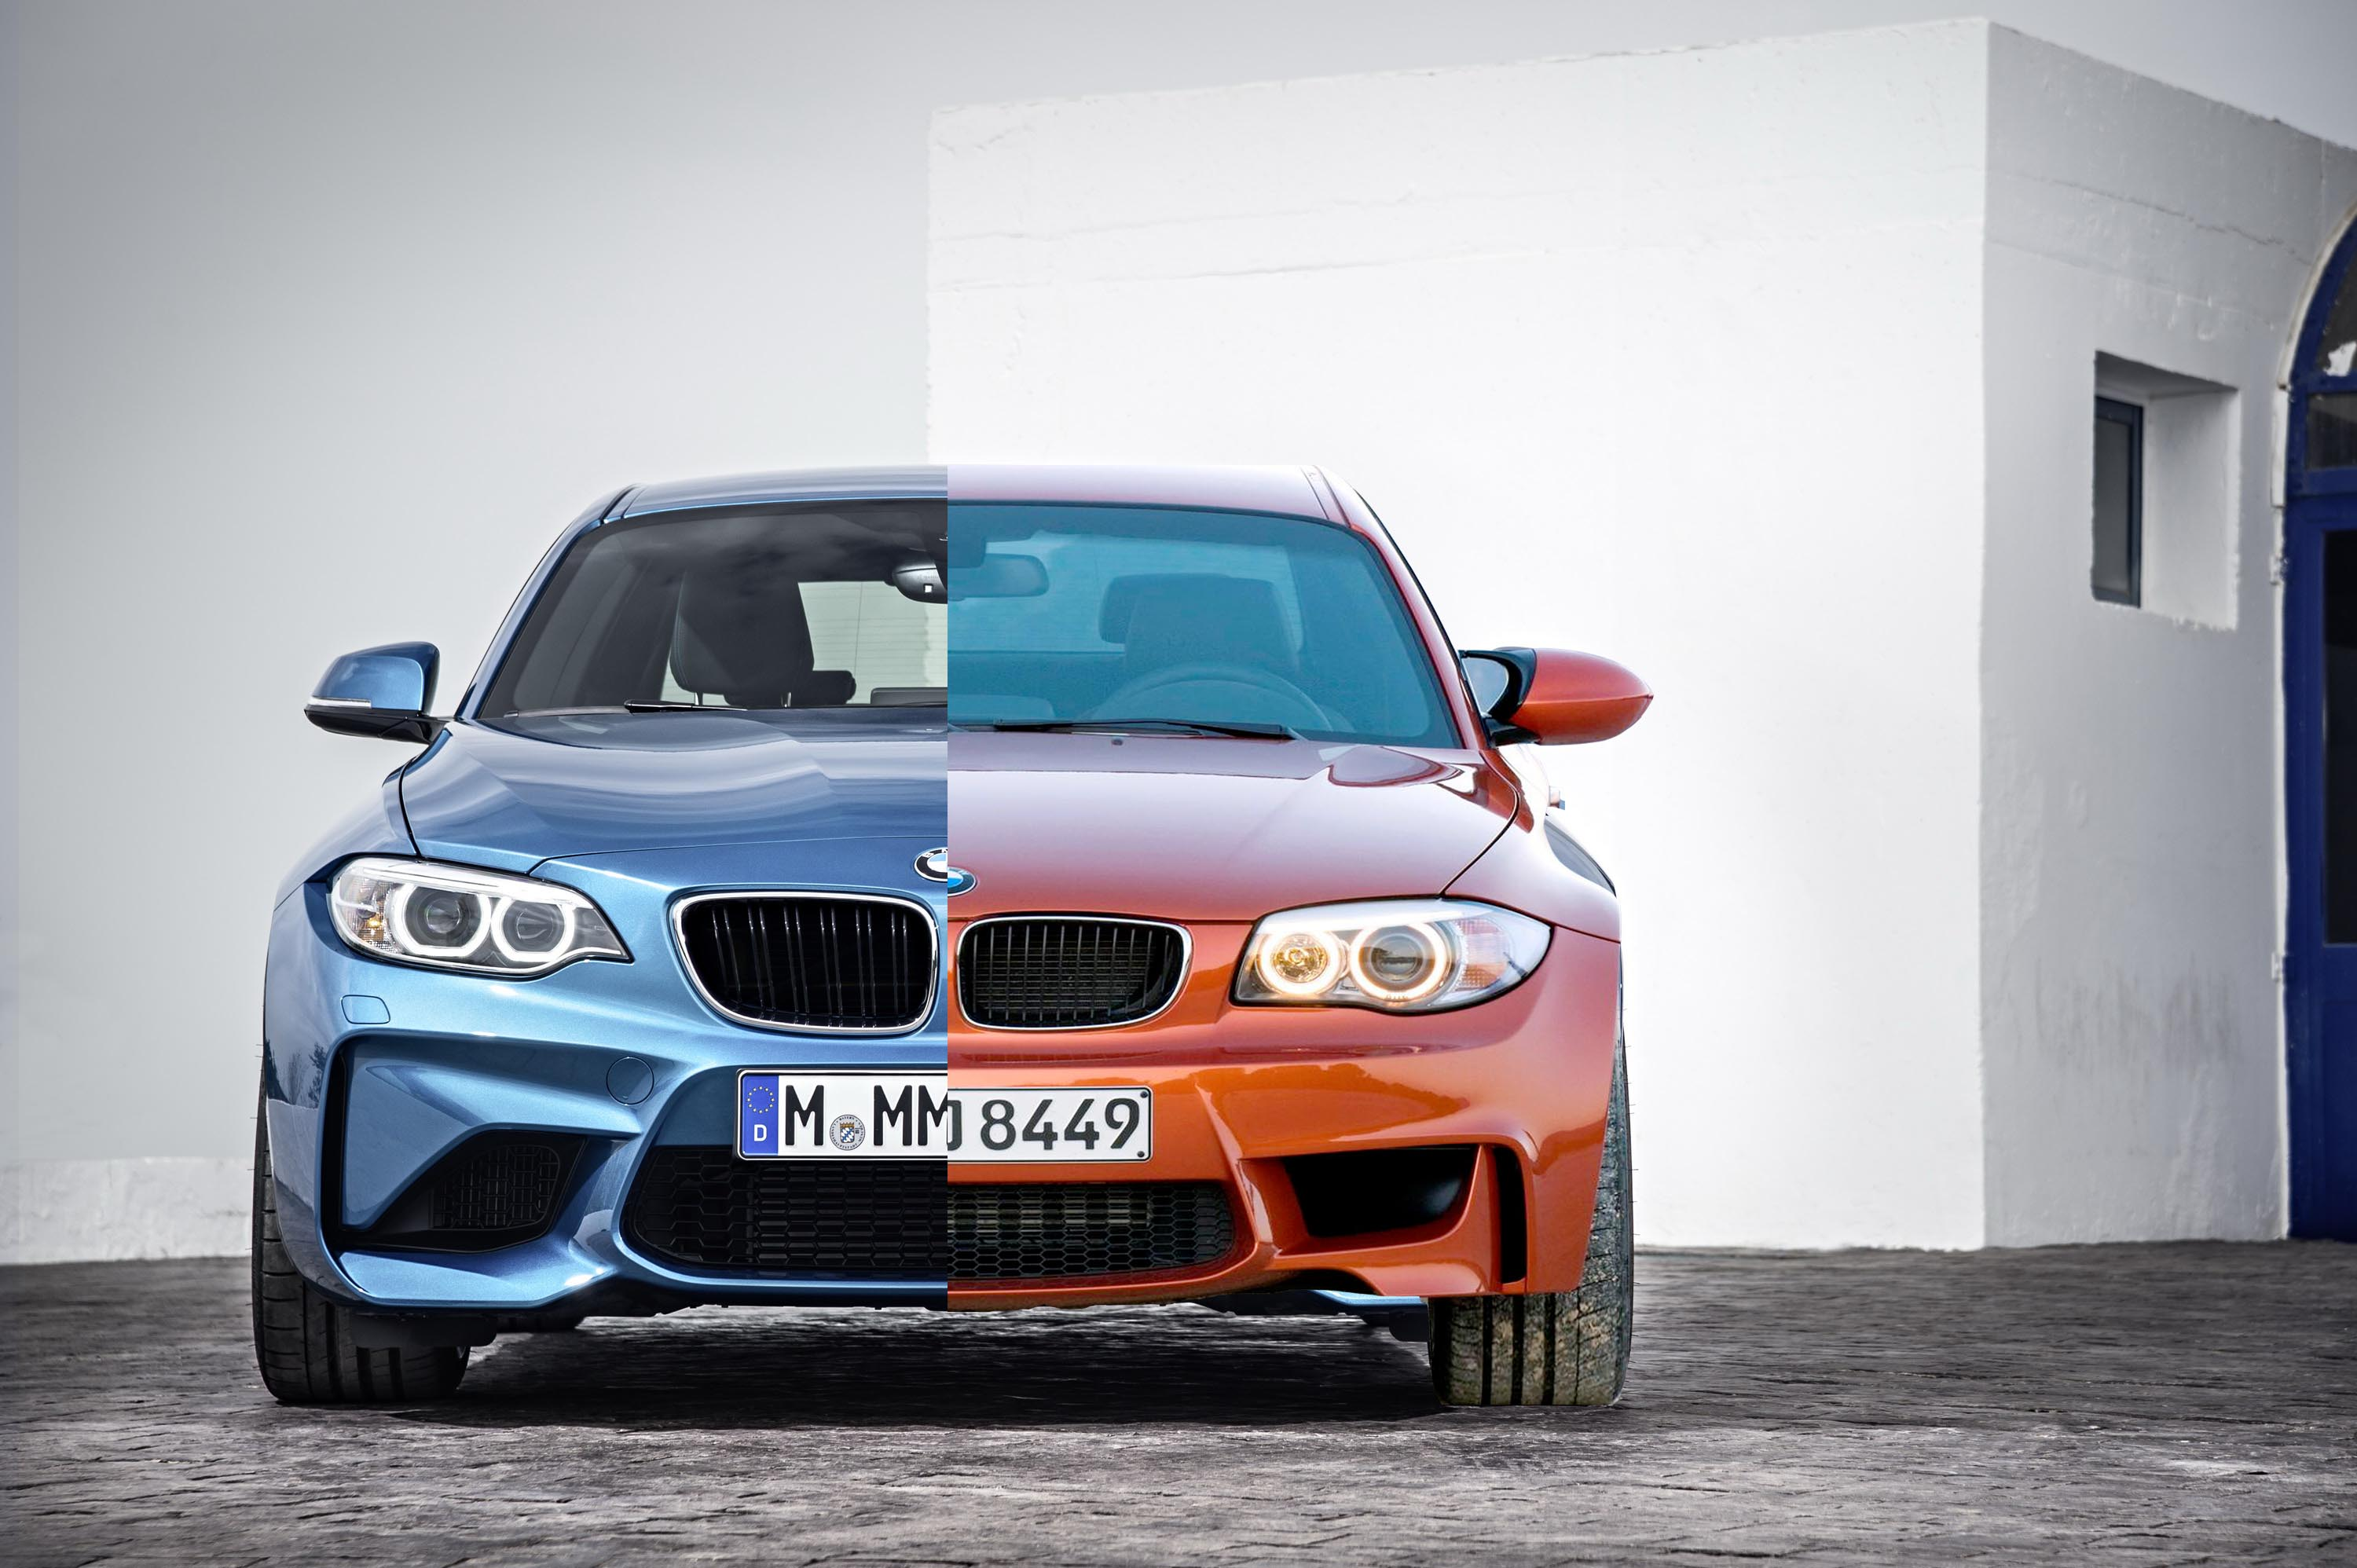 Bmw M2 Top Speed Bmw M2 Vs 1m Coupe Gallery 650793 Top Speed